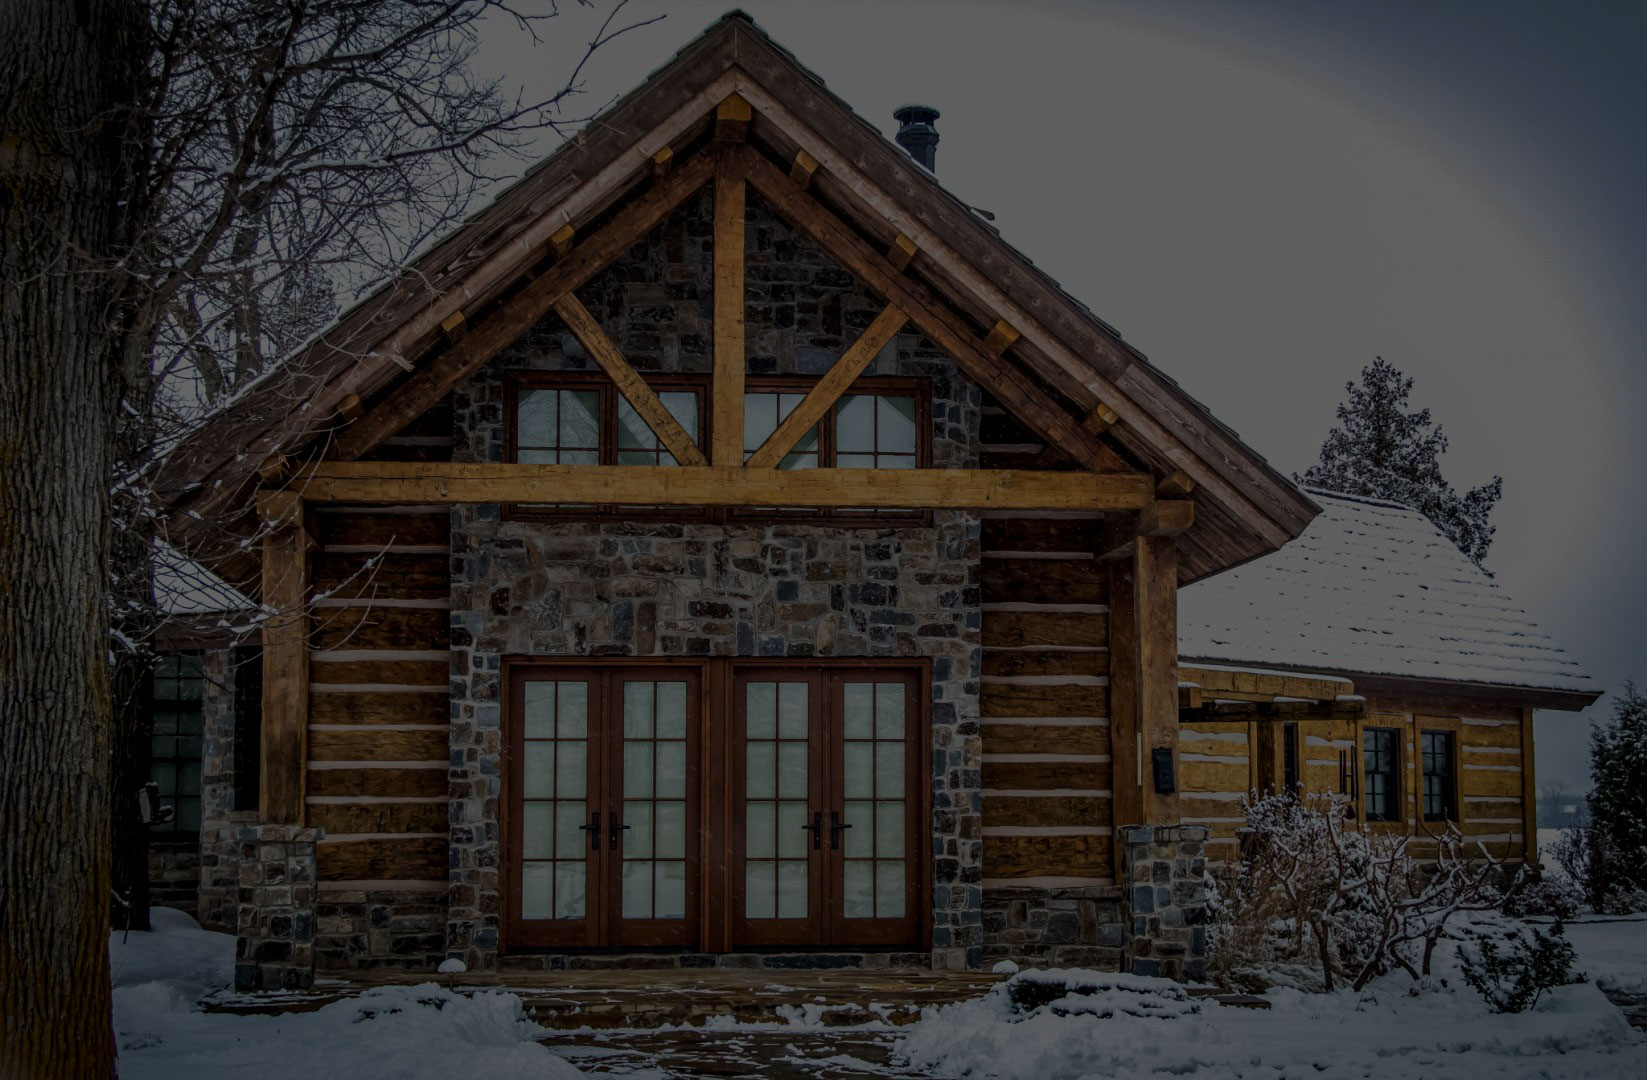 Cabin exterior featuring vintage reclaimed lumber construction.